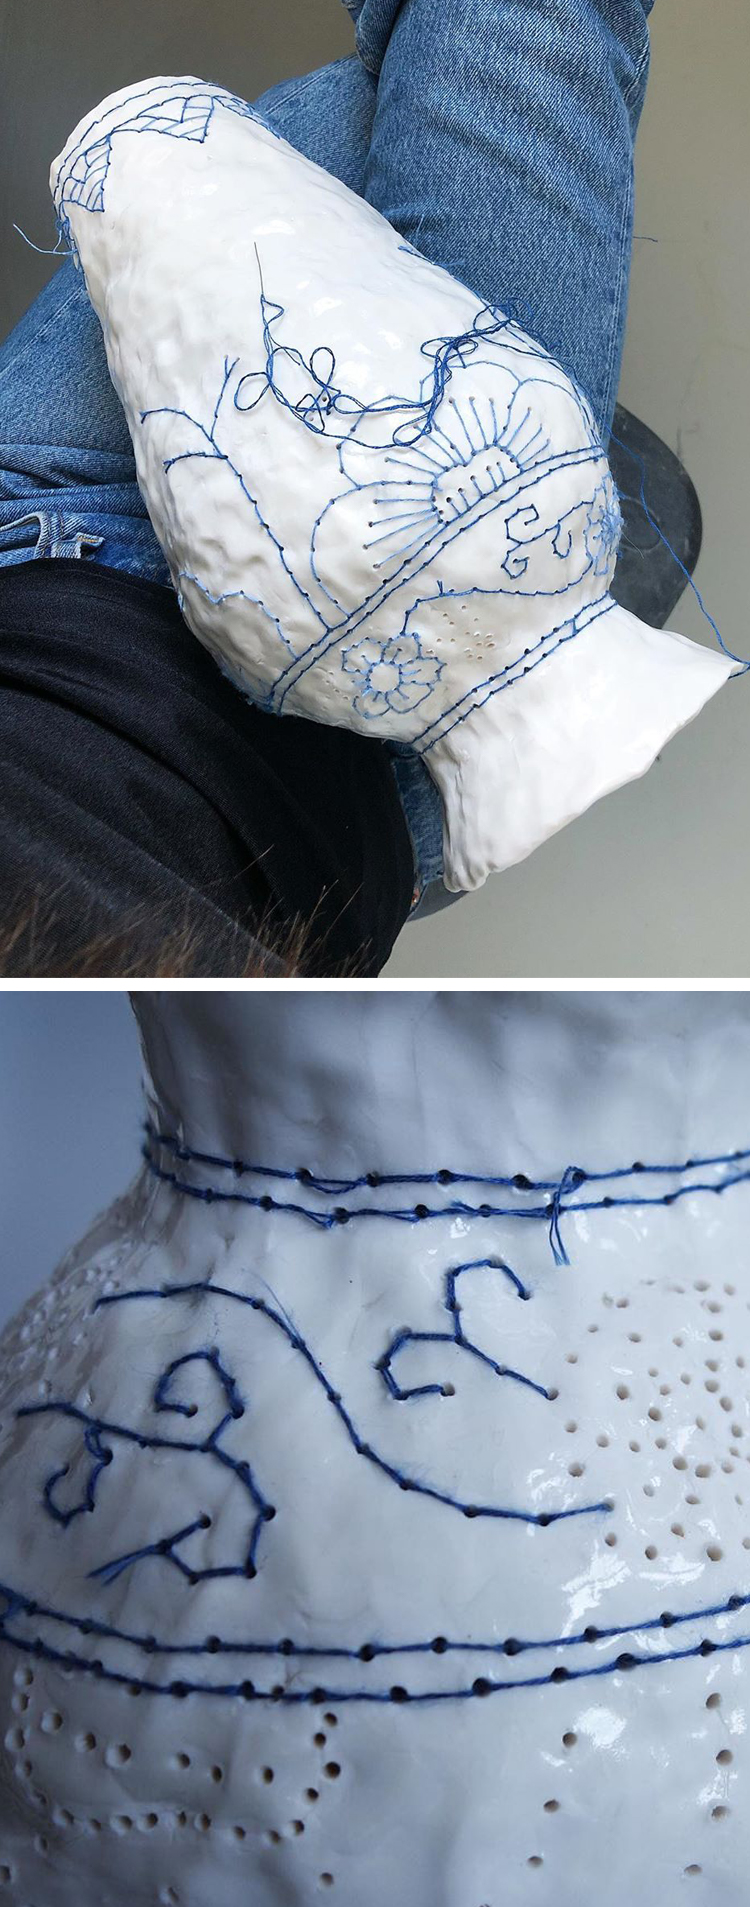 Embroidery on ceramics by Caroline Harrius